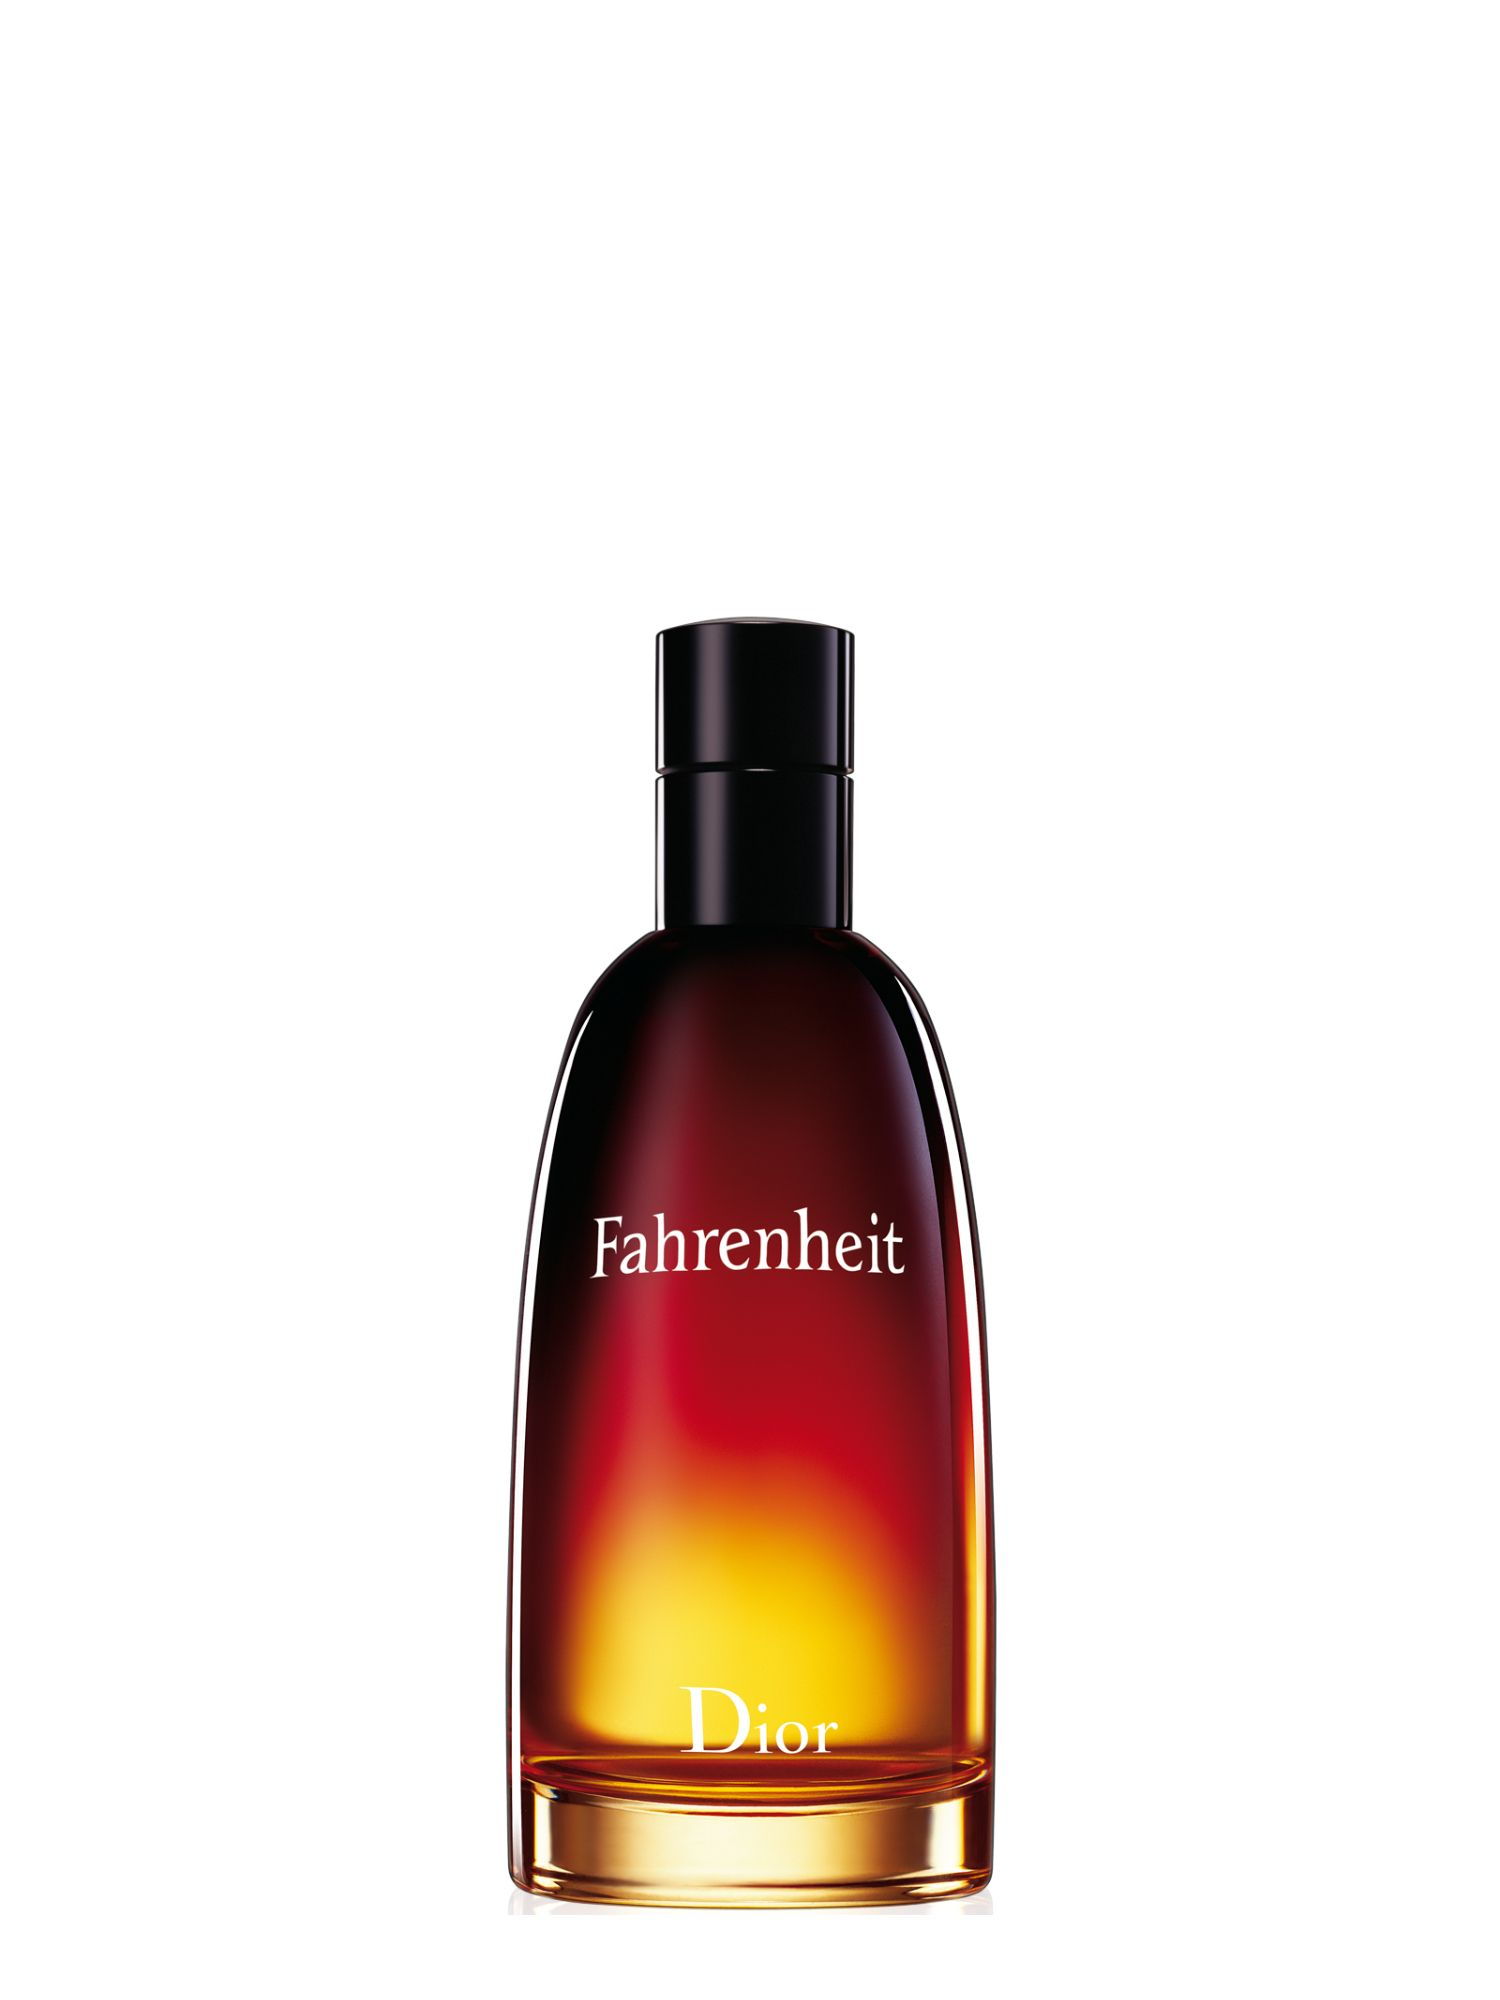 Christian Dior Fahrenheit Eau De Toilette Spray 100ml | Auto Design ...